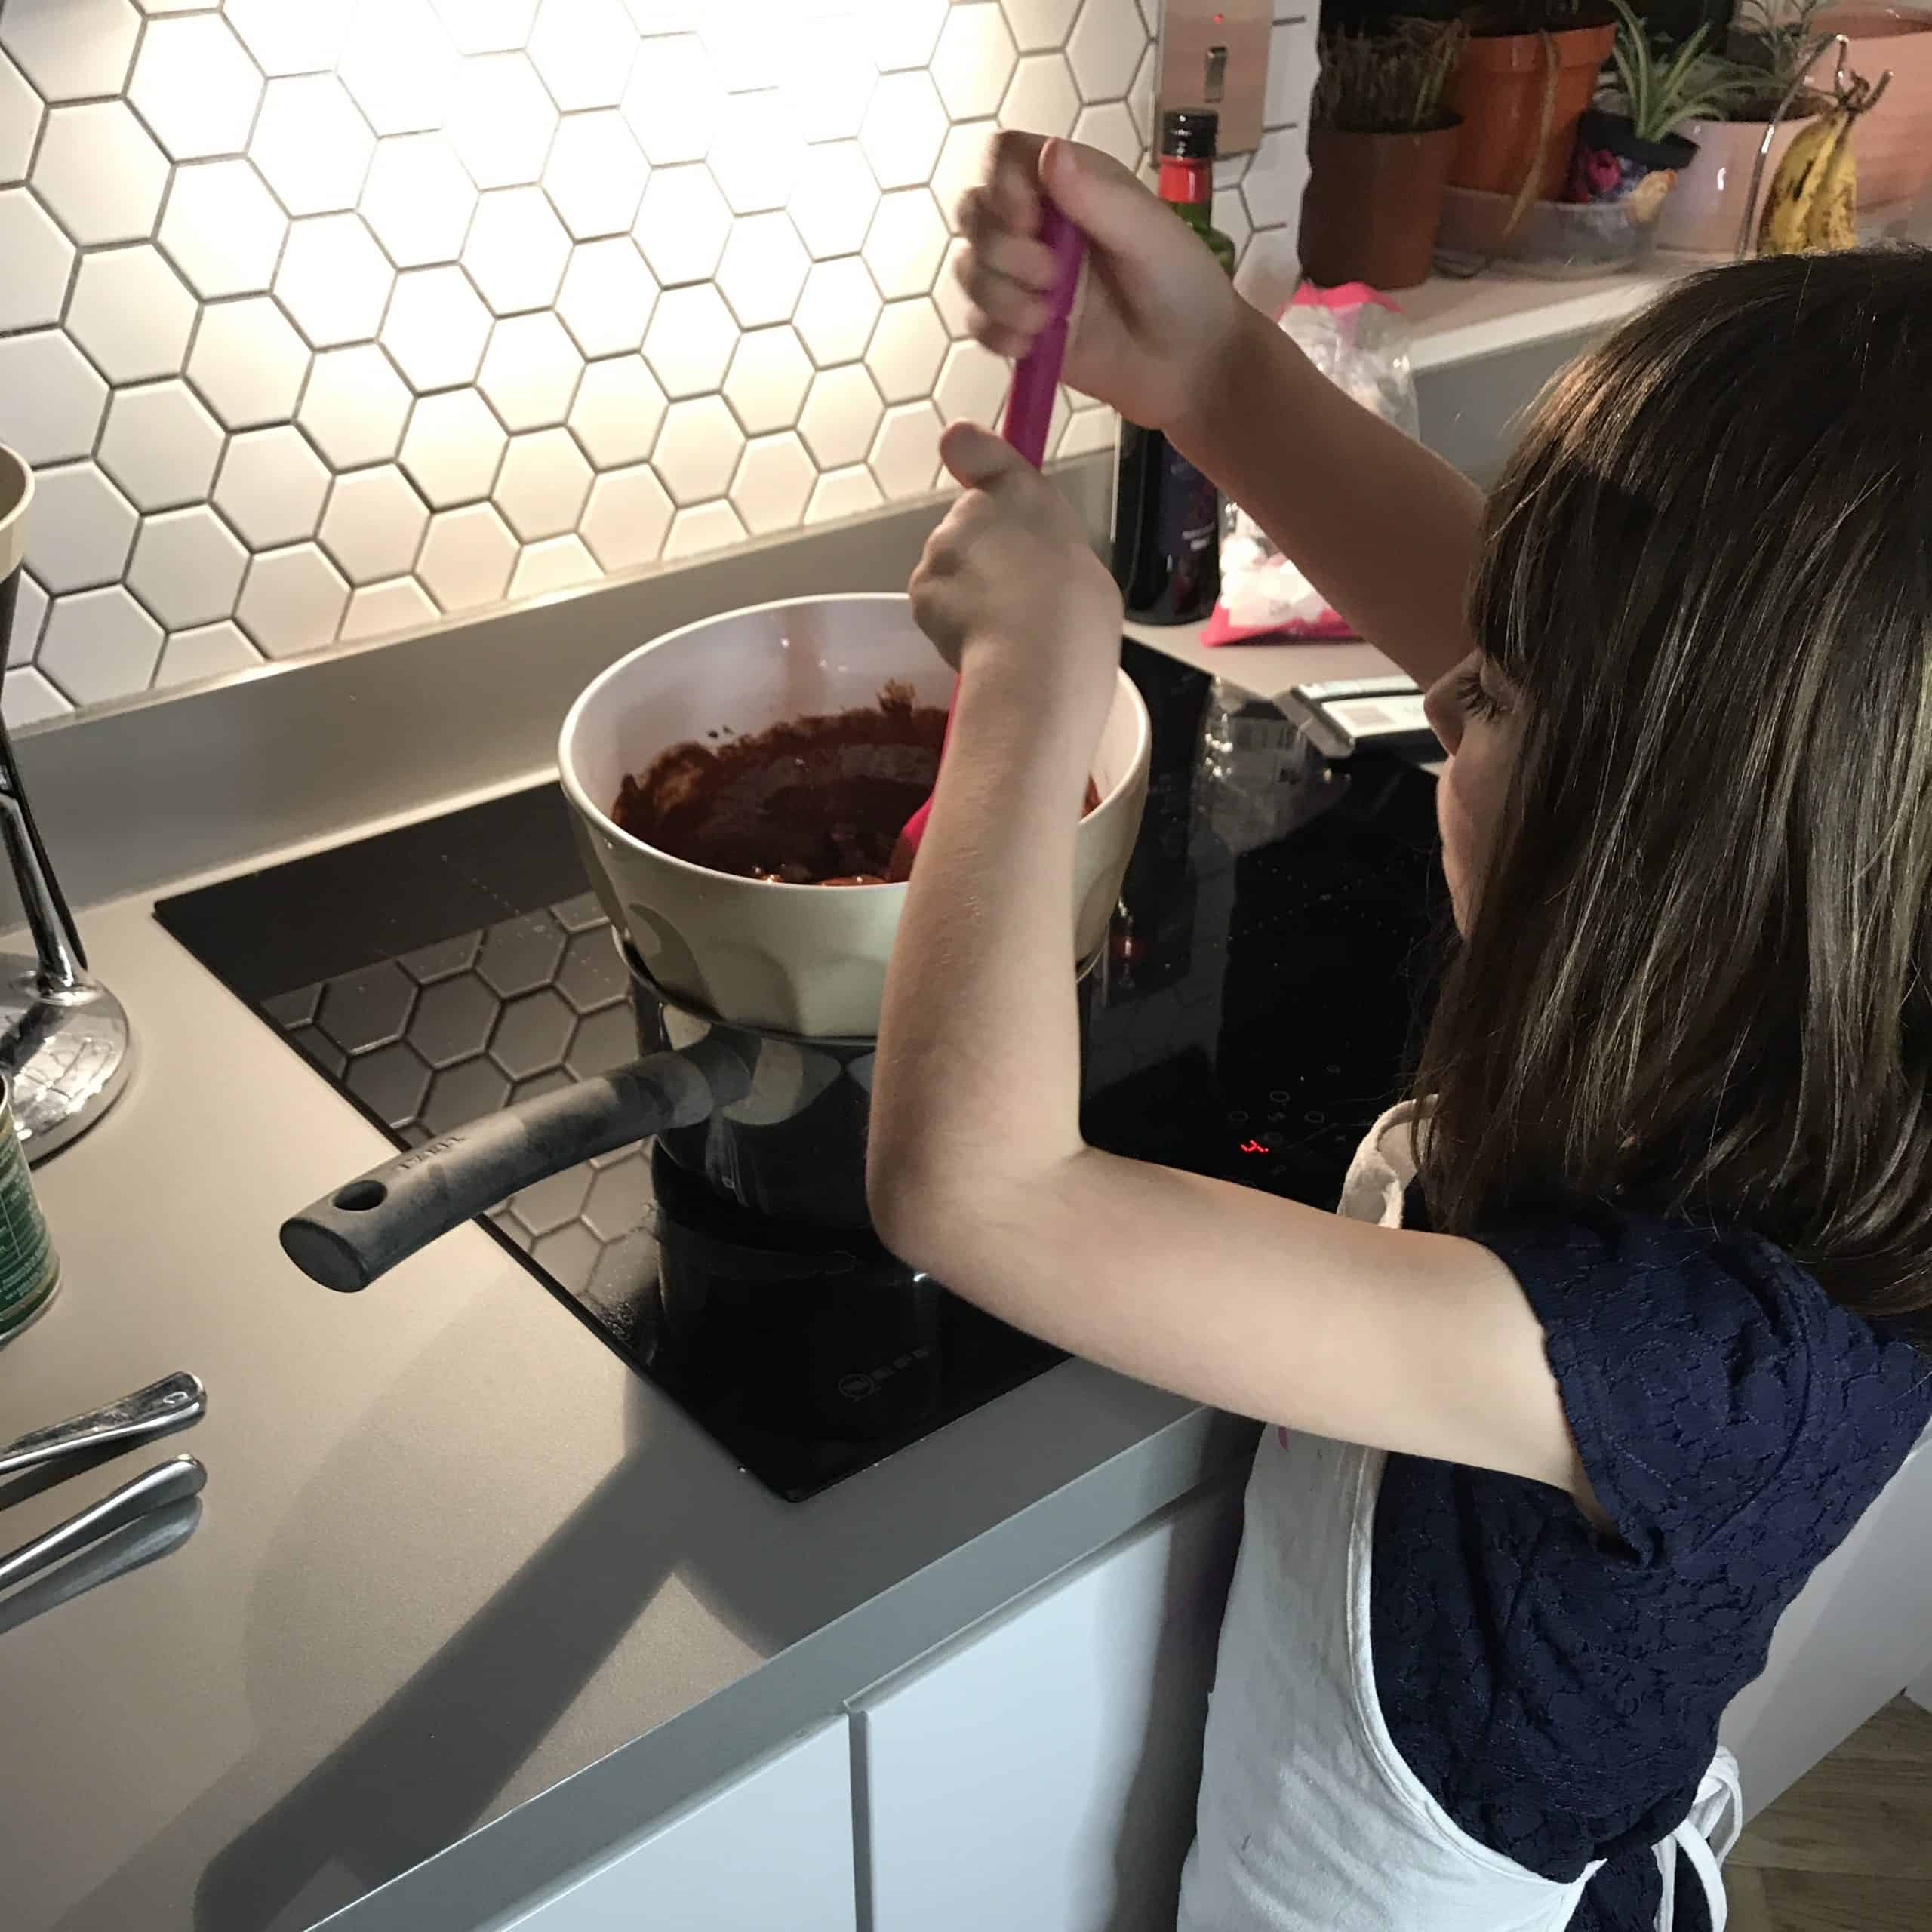 Stirring the chocolate mixture over a bain marie